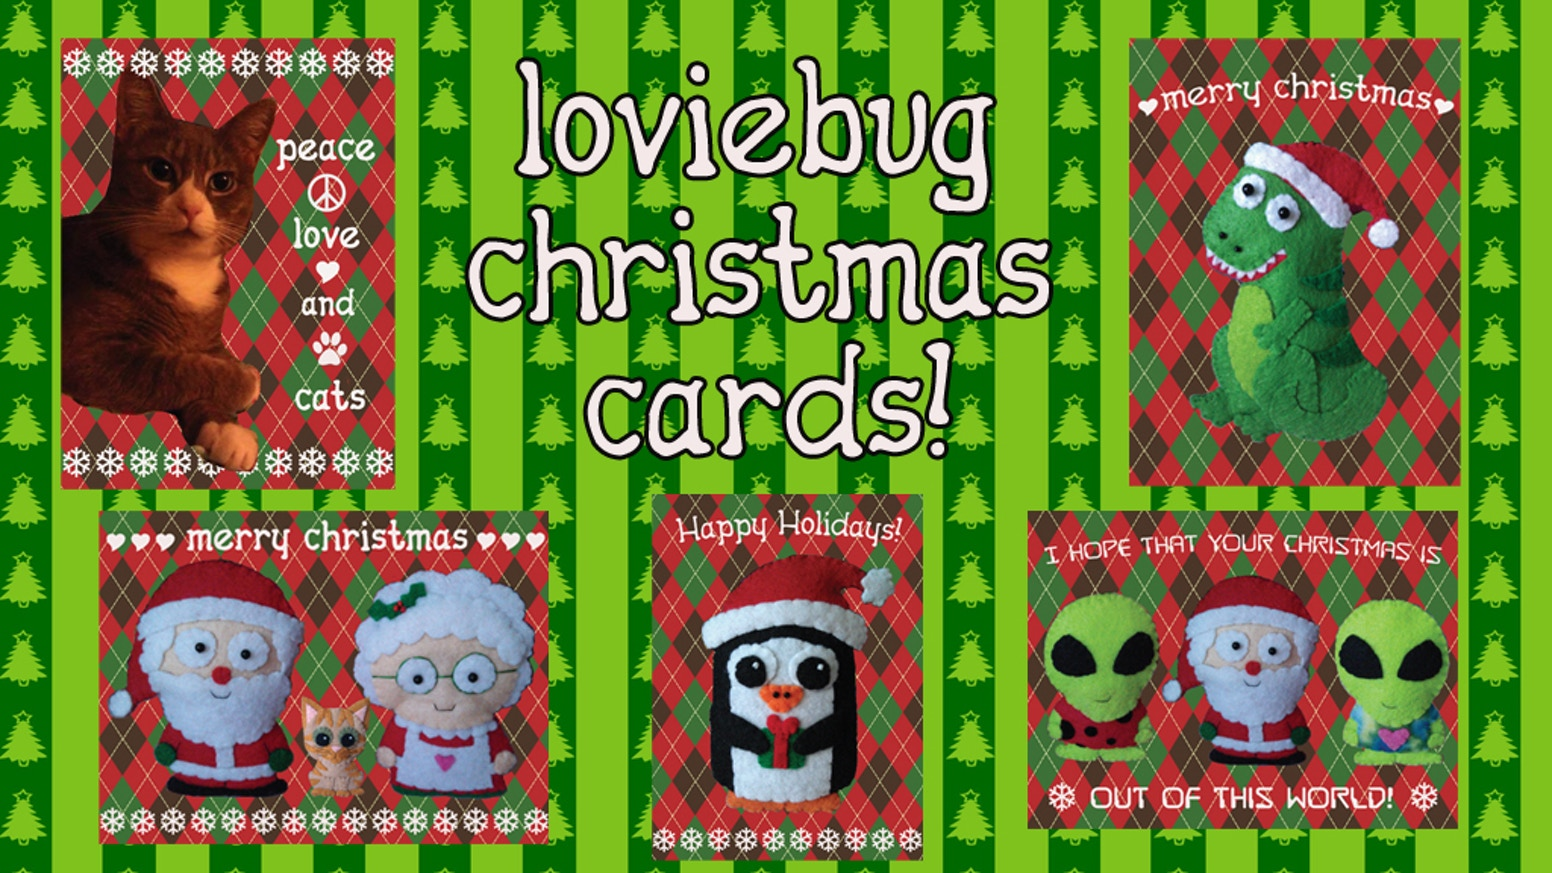 Christmas cards by loviebug designs by erin kohut kickstarter christmas cards by loviebug designs m4hsunfo